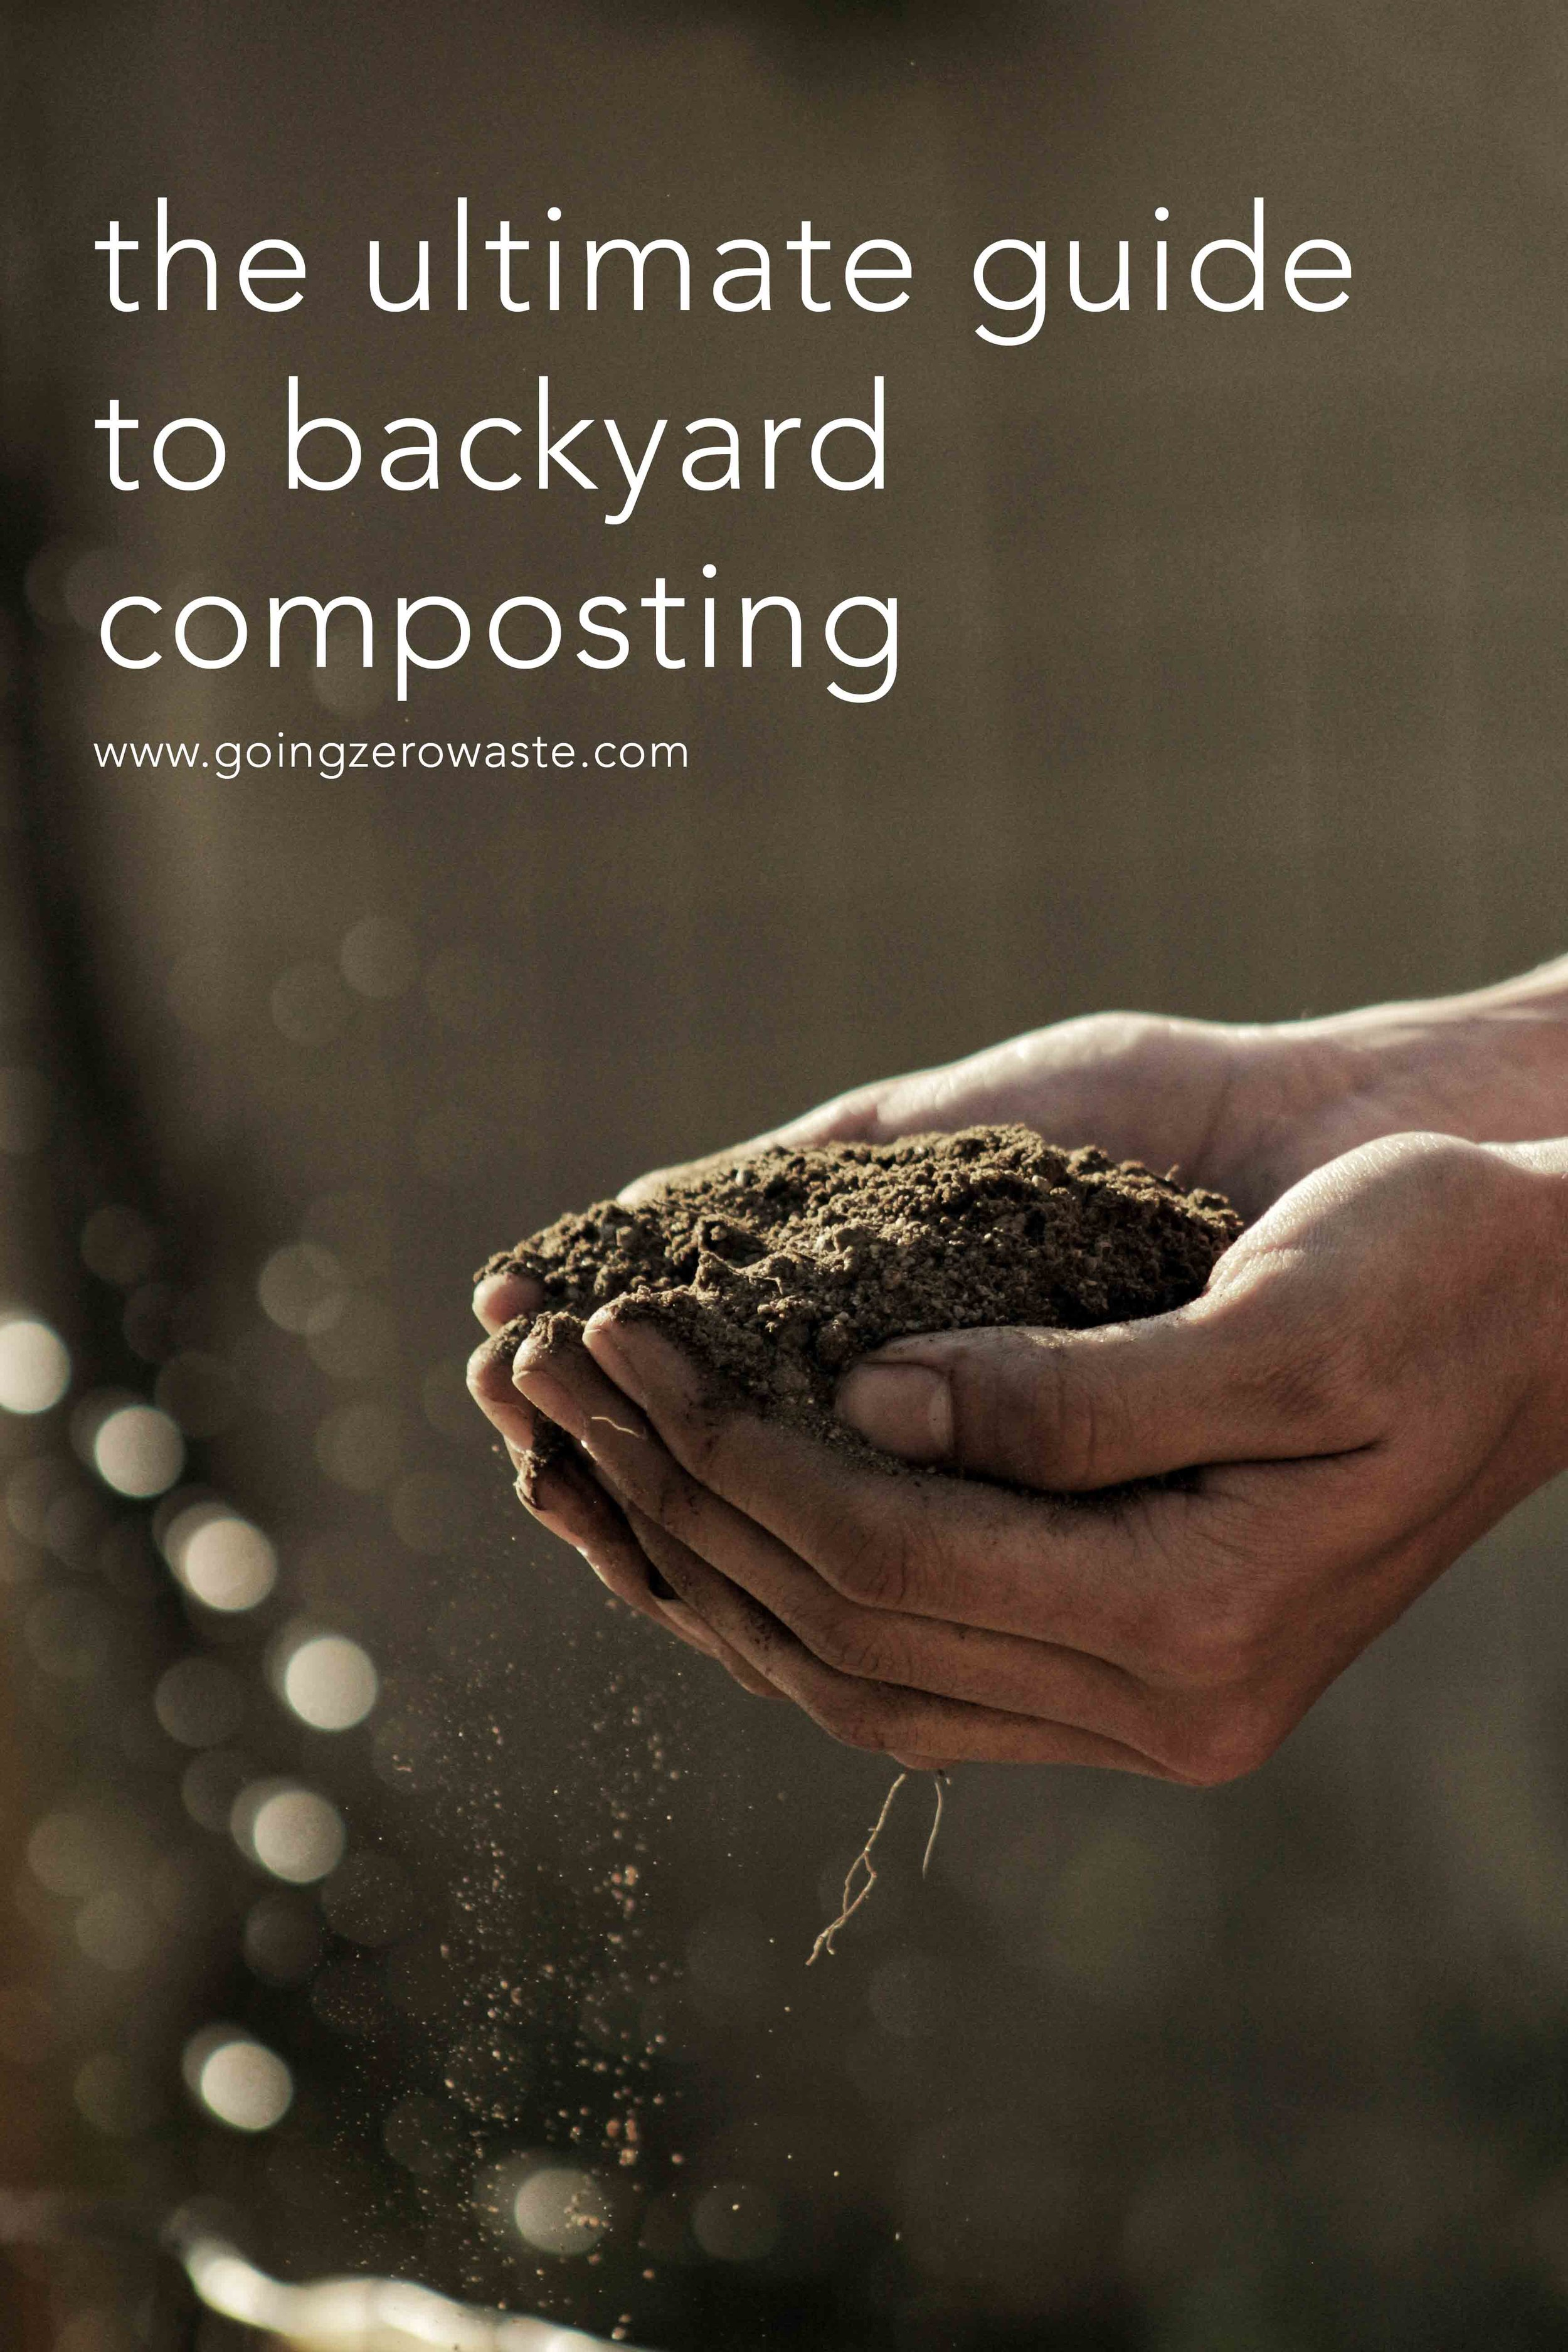 Your guide to backyard composting. Keep your home zero waste by diverting organic matter from the landfill. Learn what you can and can't compost with www.goingzerowaste.com #compost #garden #zerowaste #foodwaste #drawdown #backyardcomposting